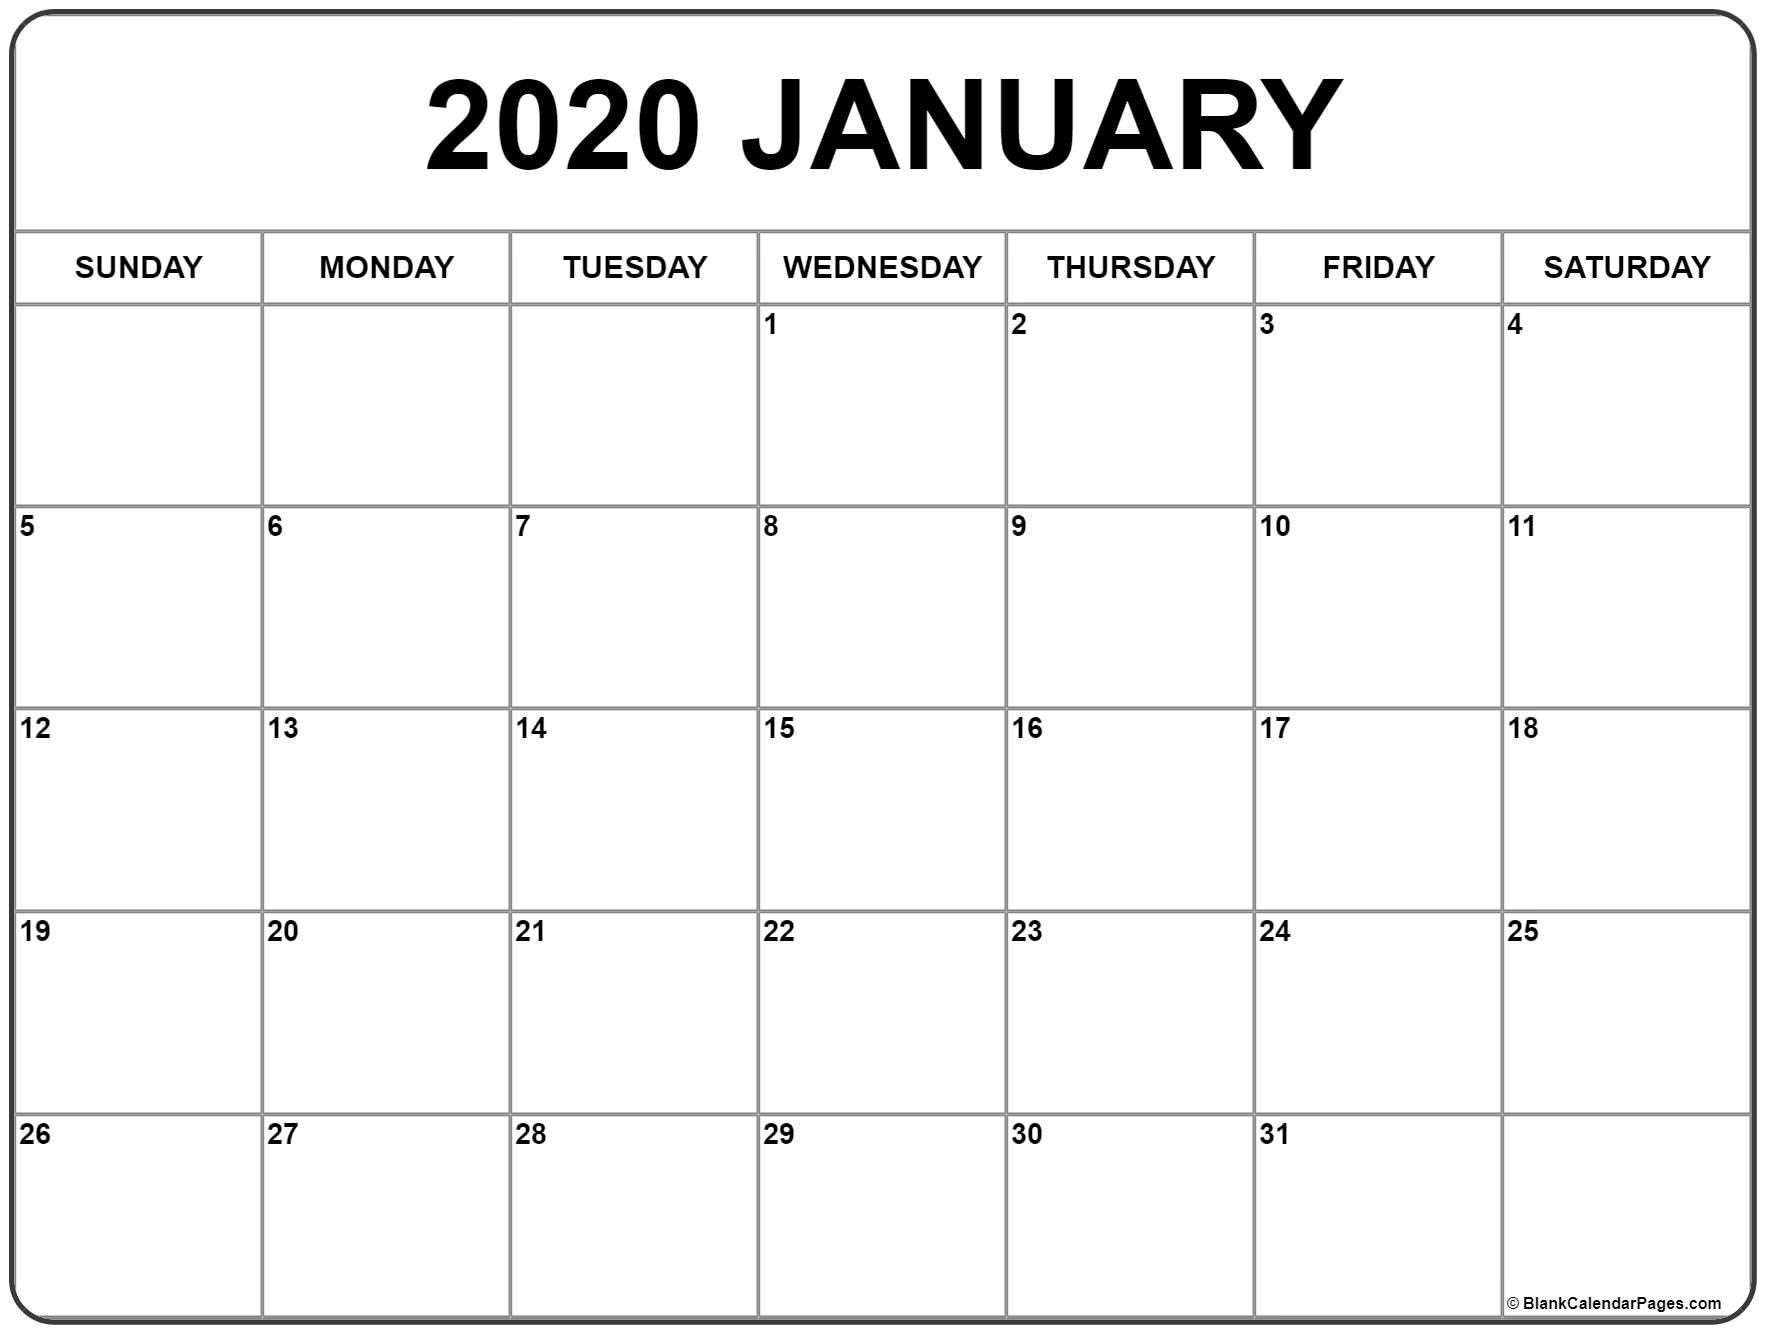 January 2020 Calendar Nz | Calendar Template Printable